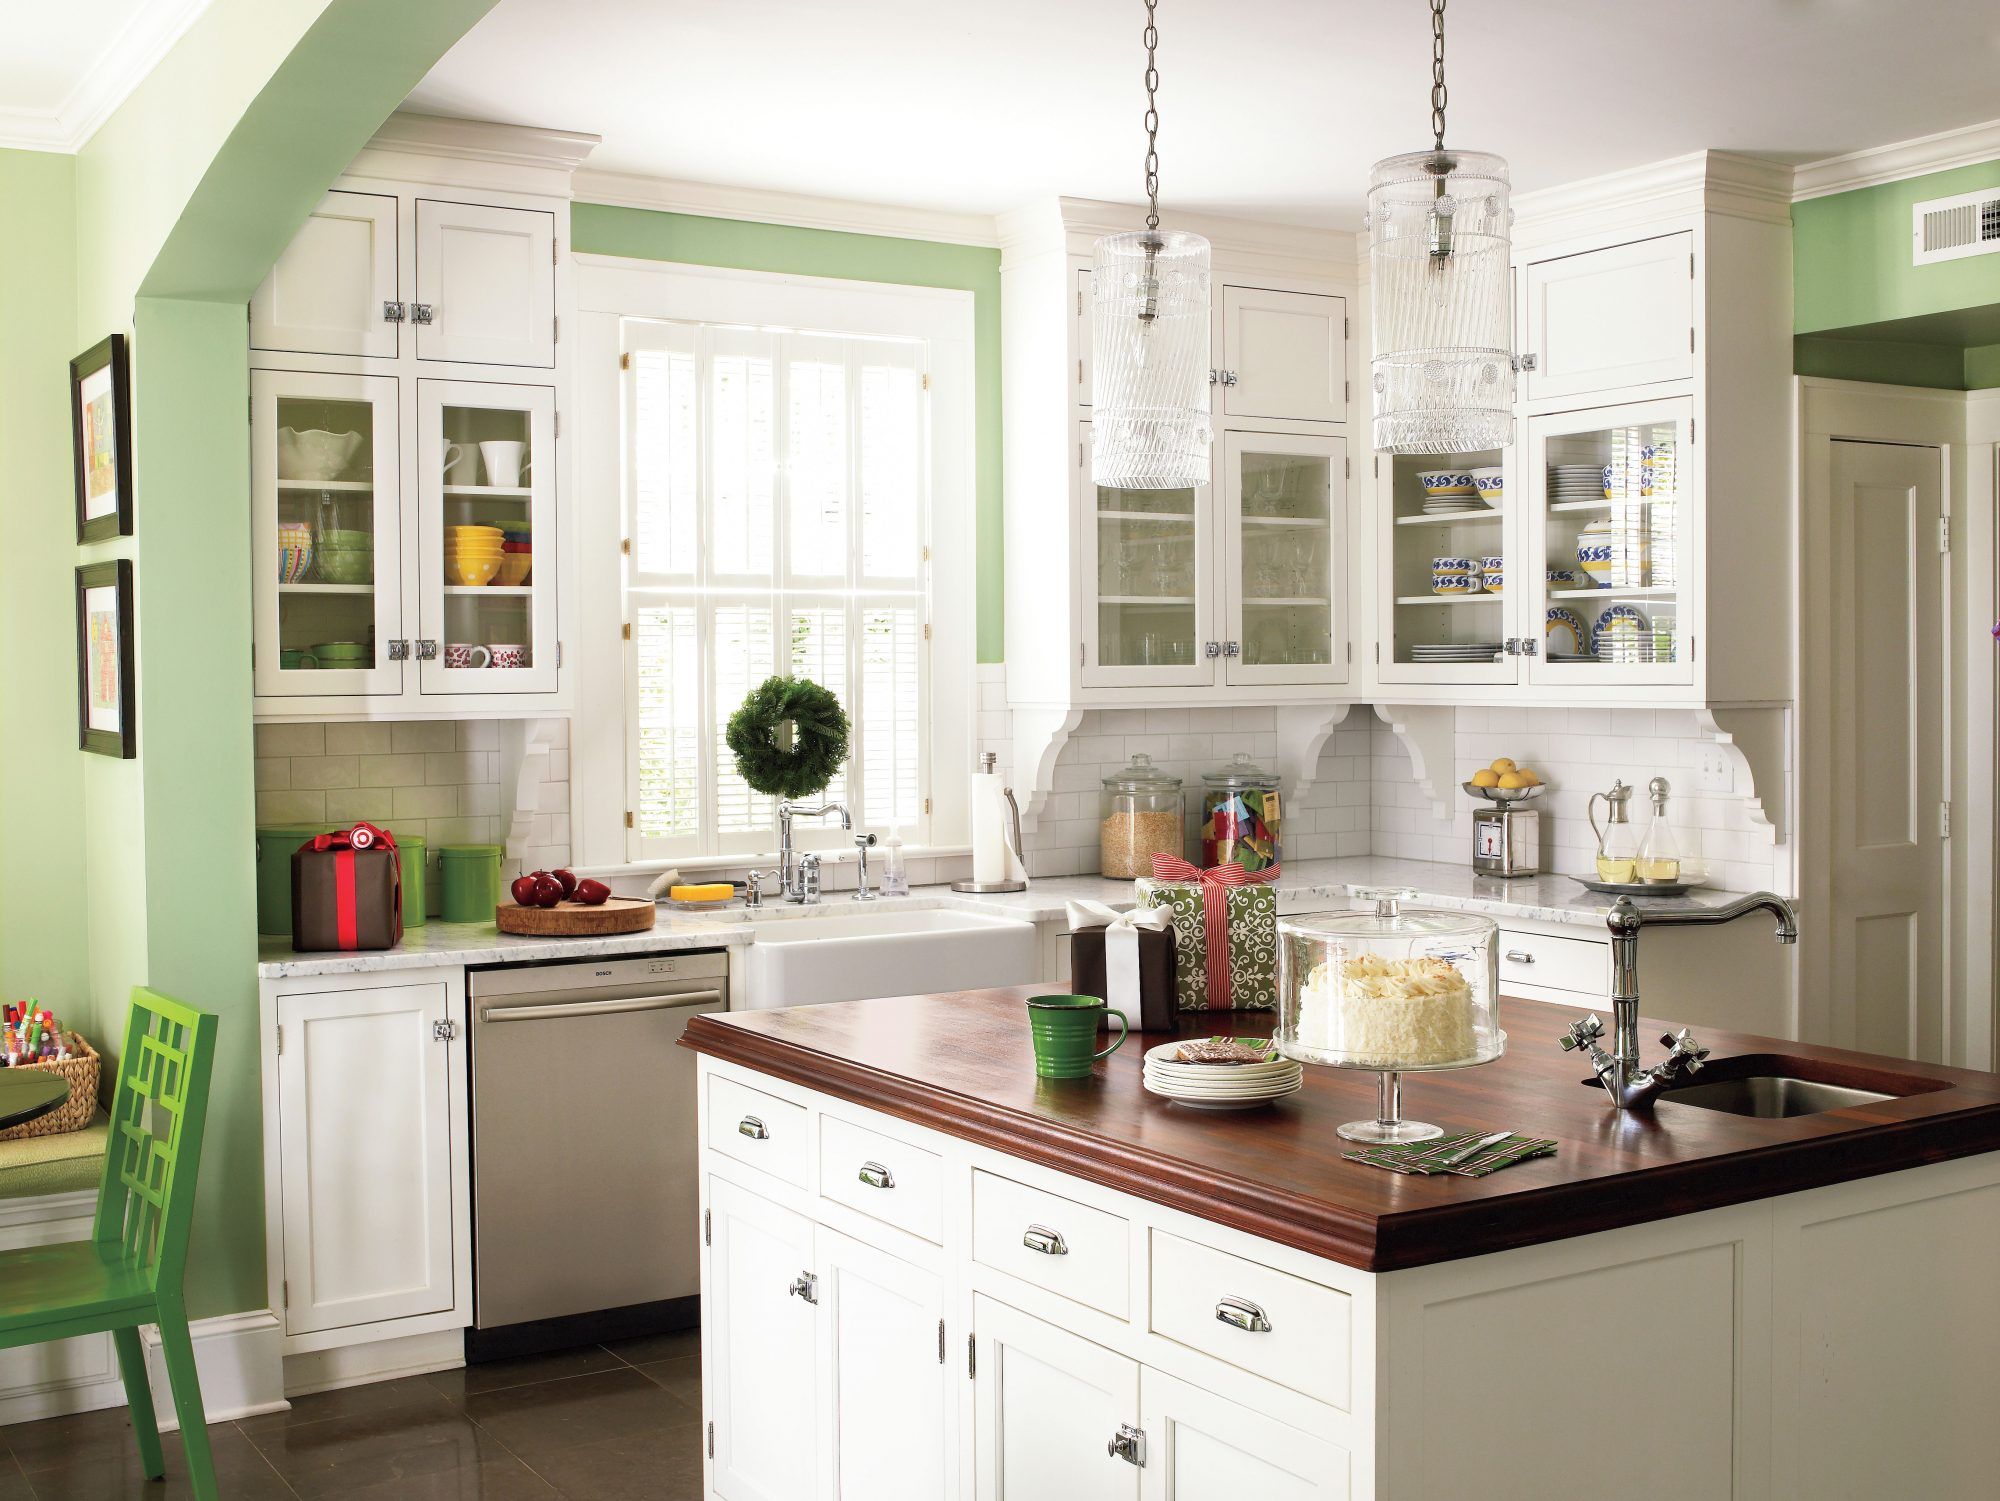 classic materials stylish vintage kitchen ideas   southern living  rh   southernliving com